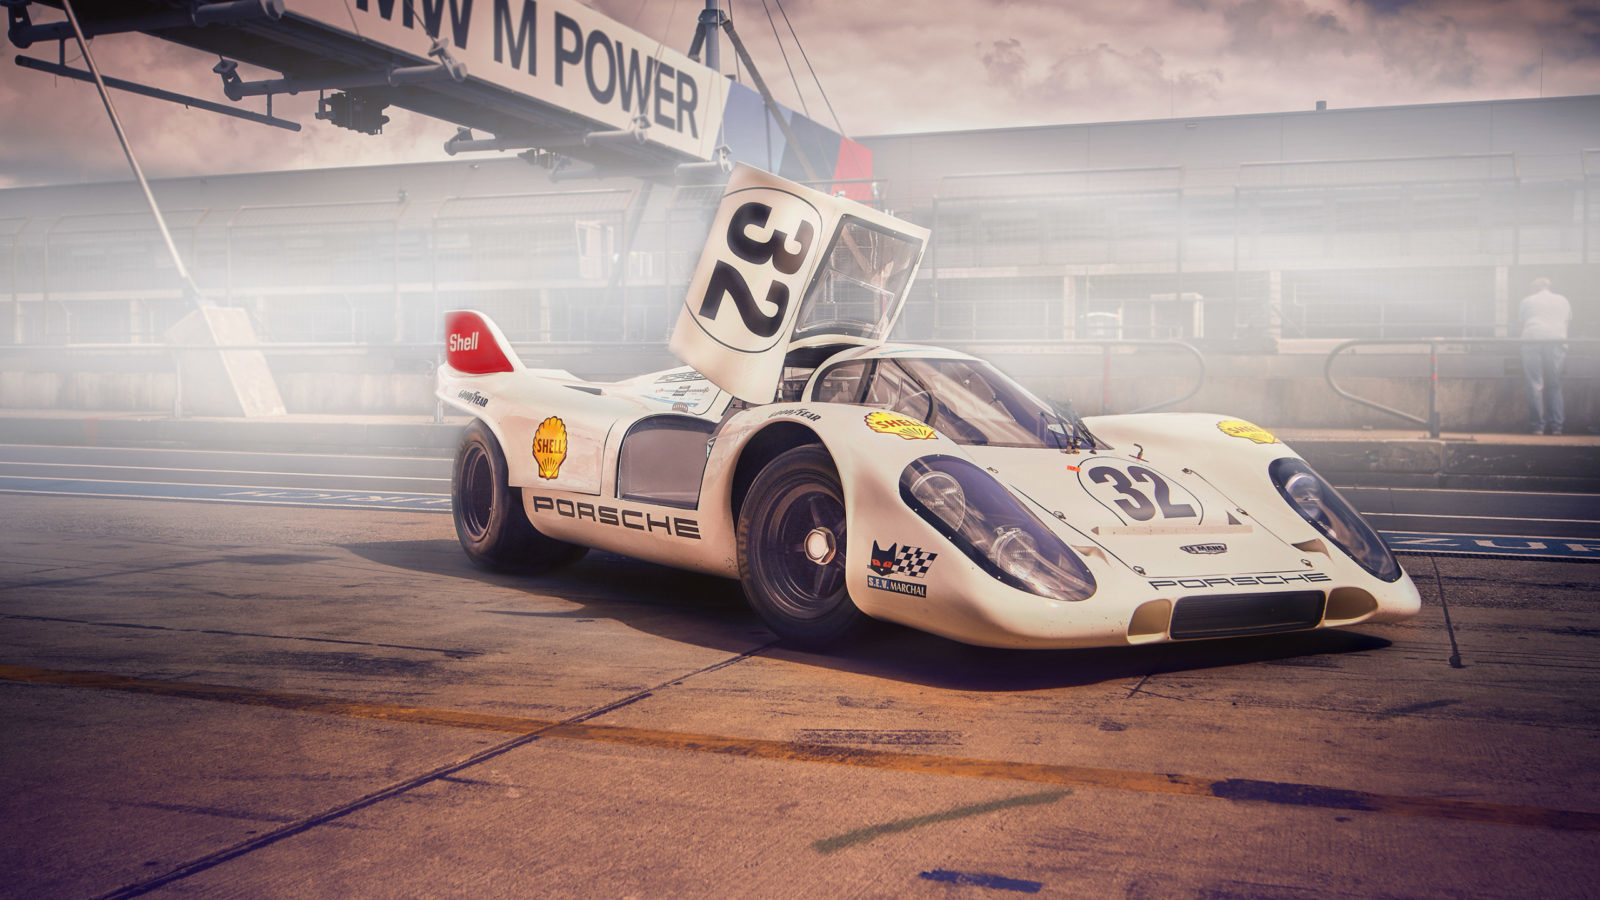 6 iconic sports cars you need to know about